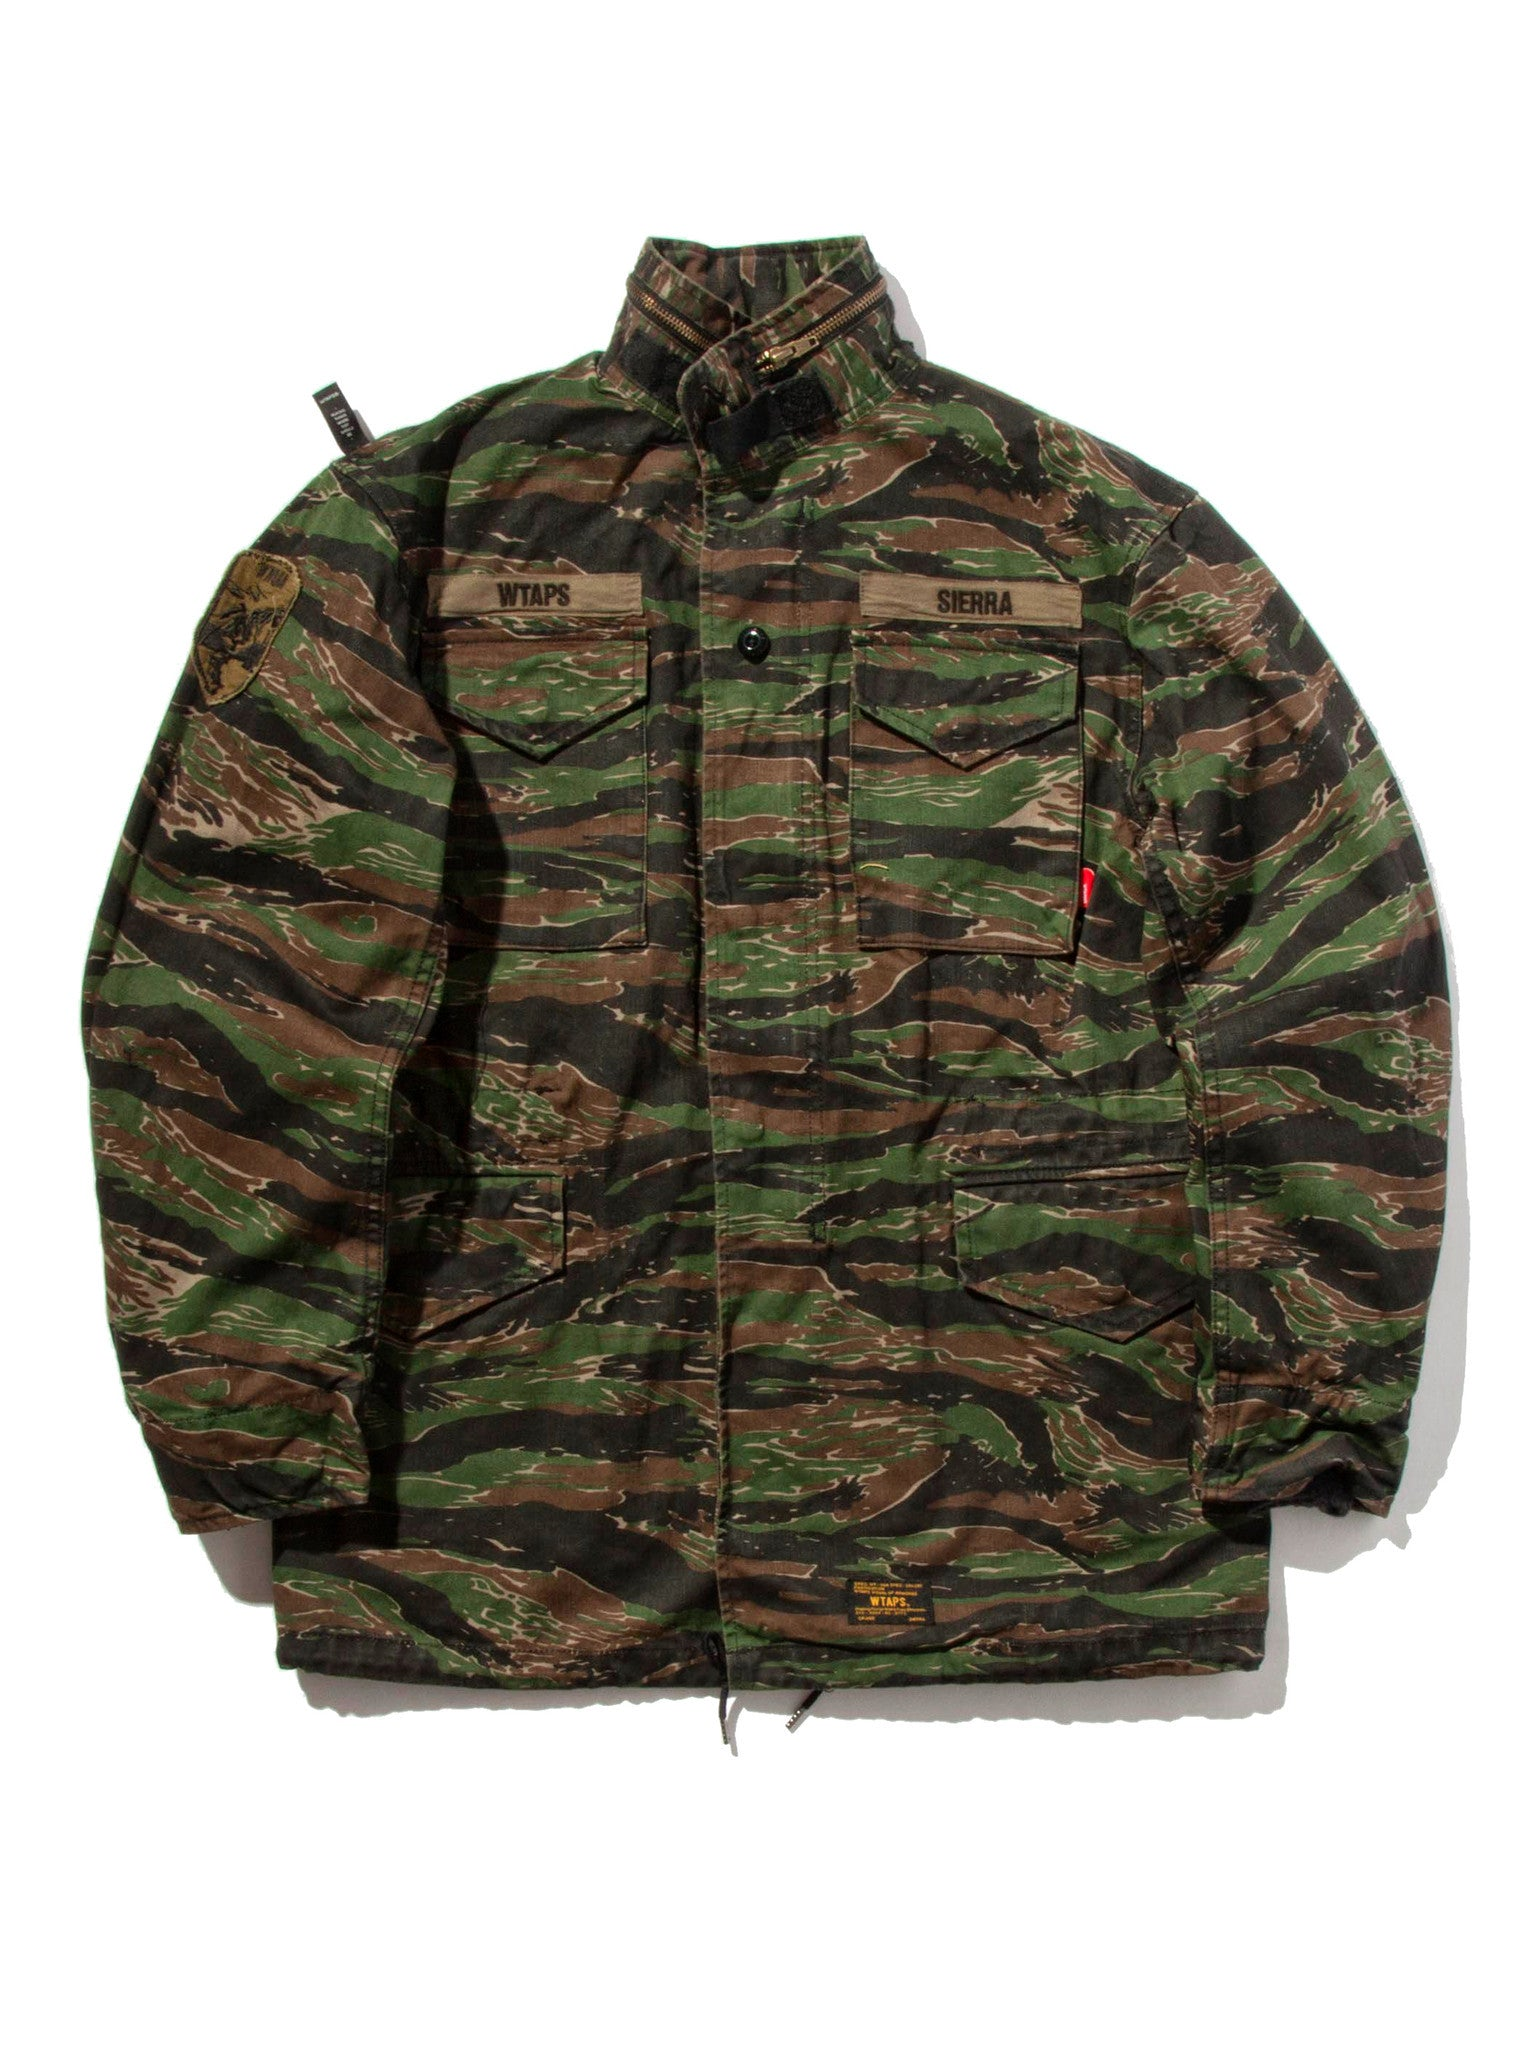 Tiger Stripe M-65 Jacket (Cotton Twill) 6